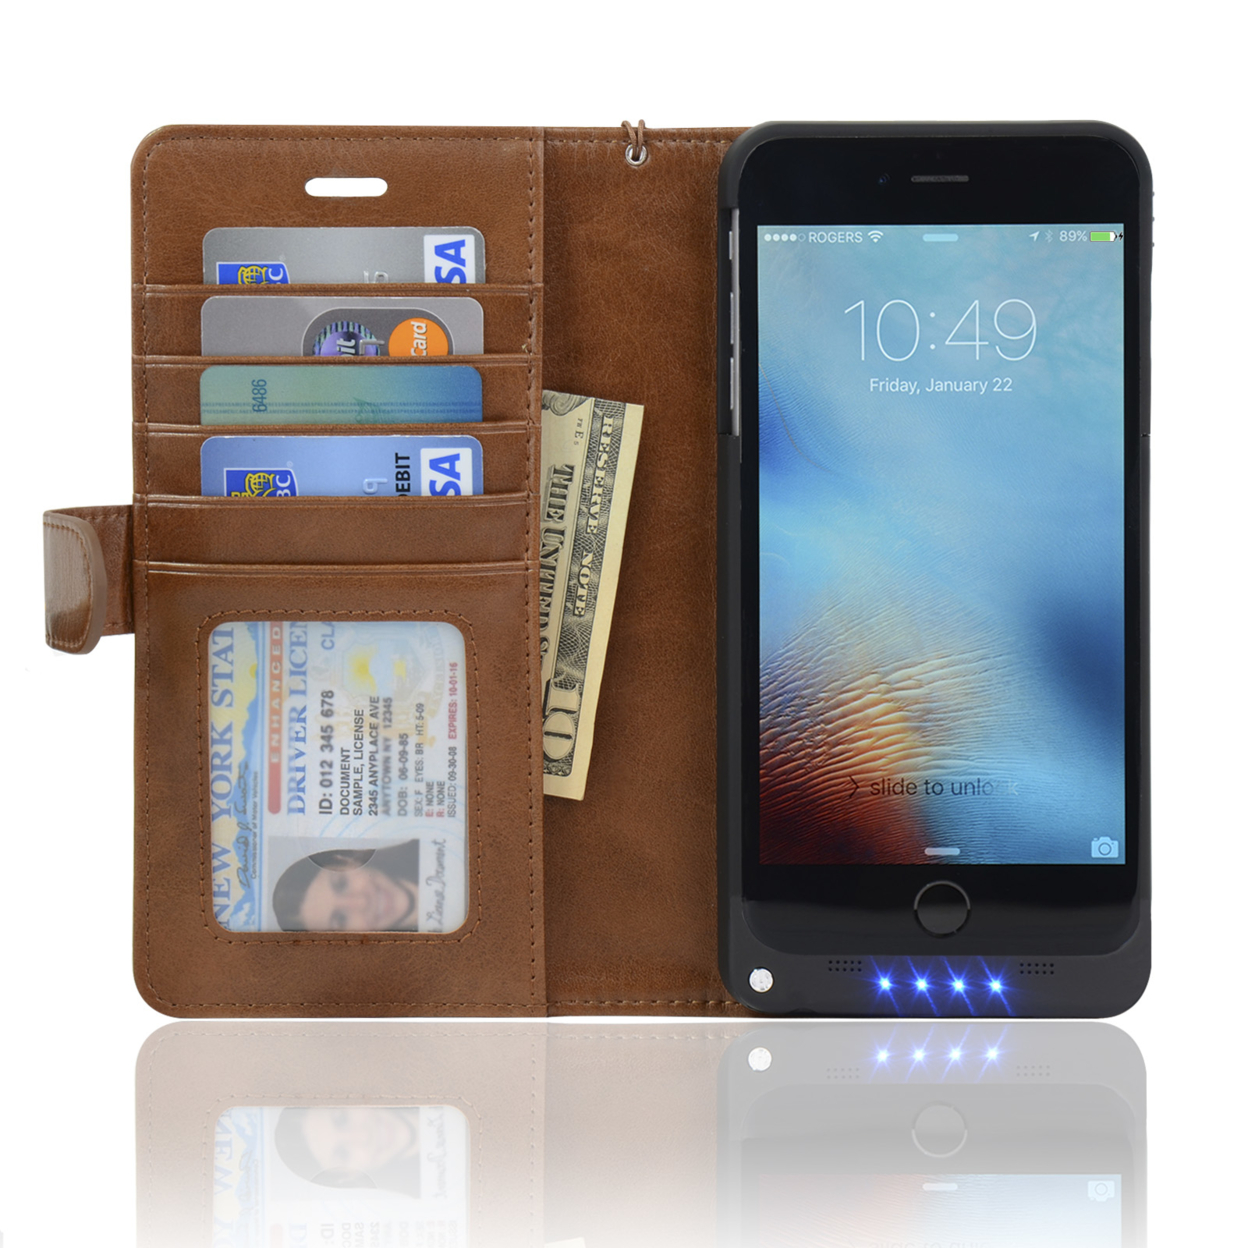 Navor Folio Wallet Power Battery Case 5000 mAh for iPhone Ip6P-Btc - Brown 57165daa913d6f29748b4757